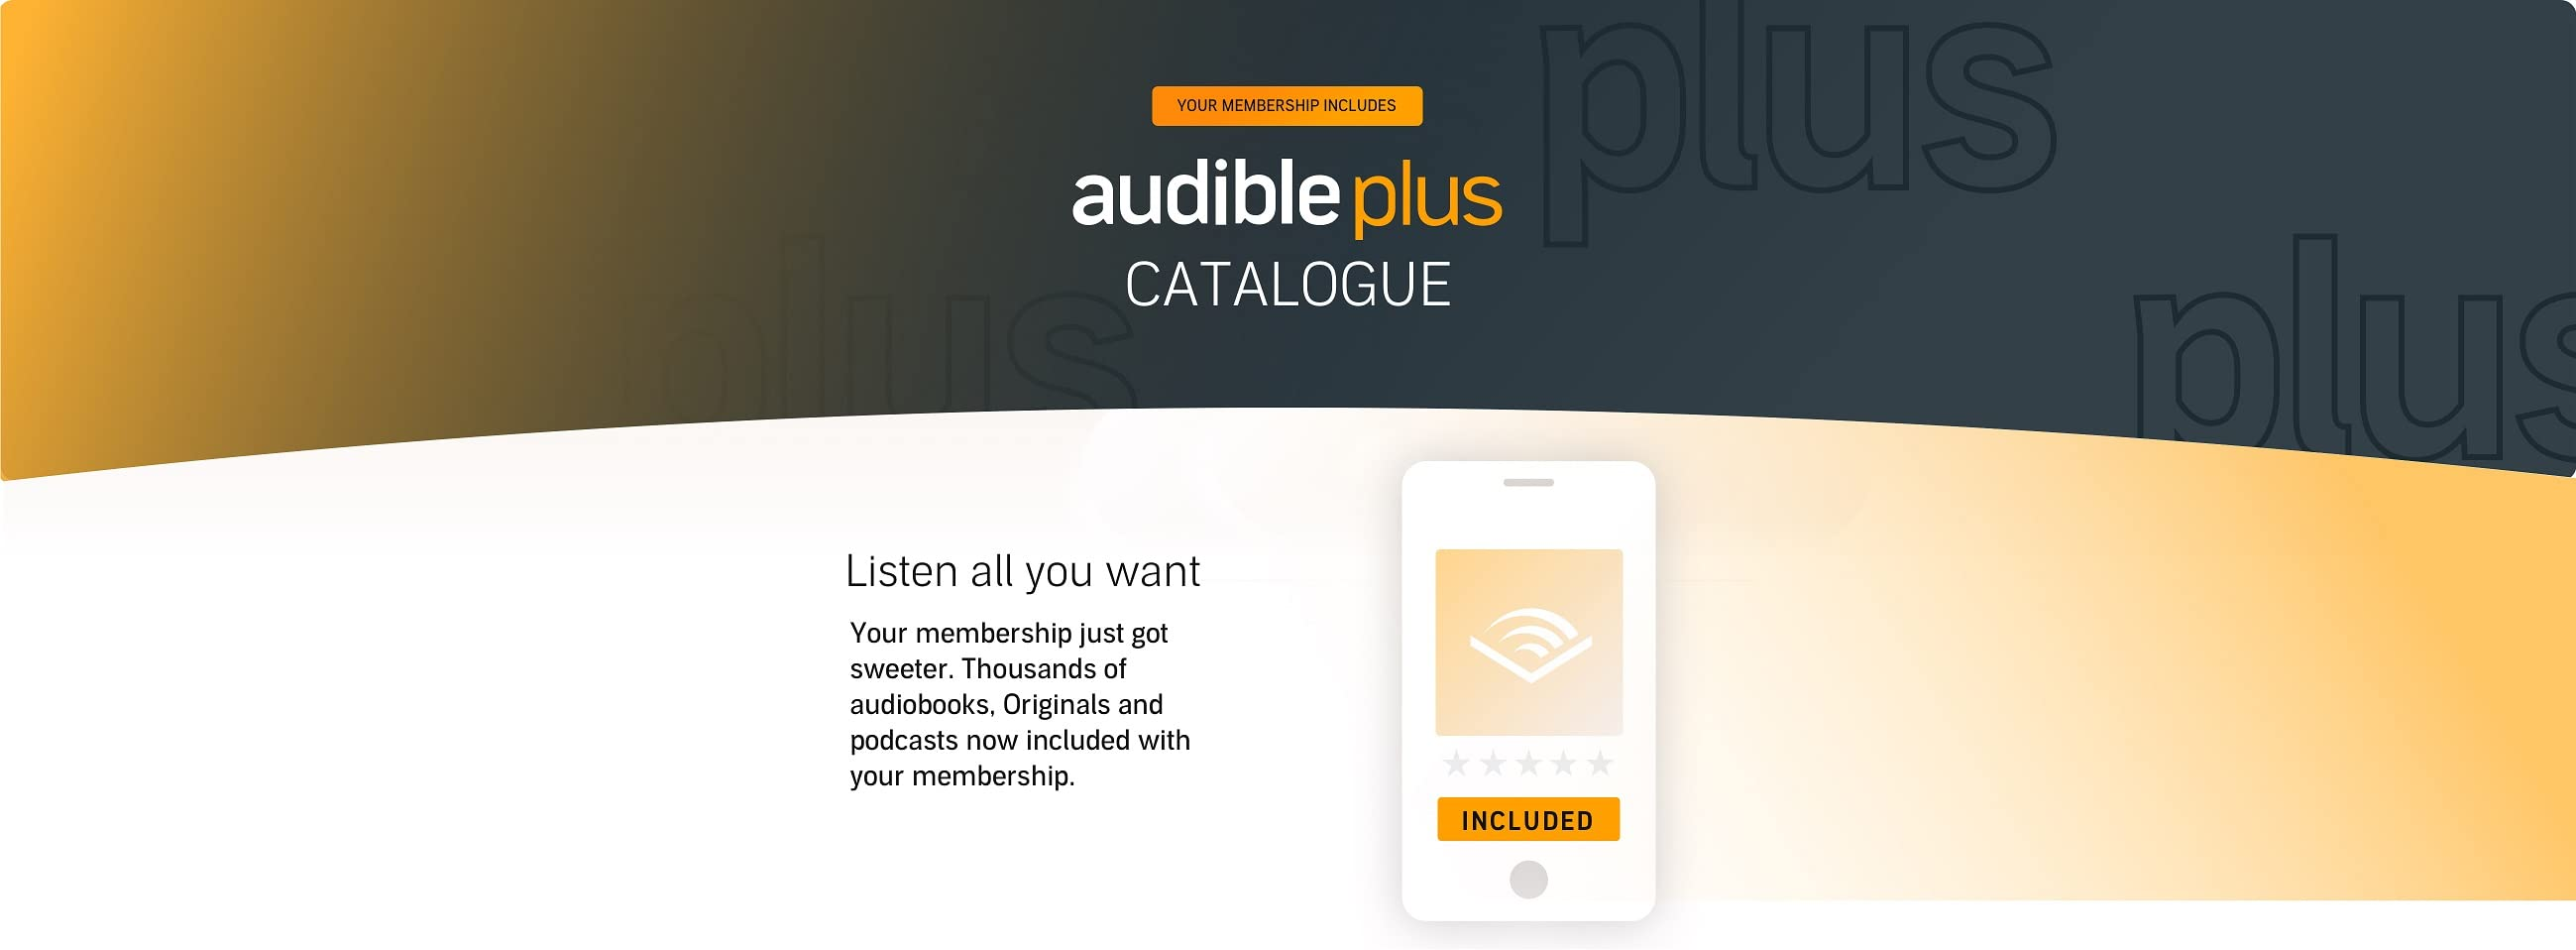 Your membership includes: The Audible Plus Catalogue. The plan you know and so much more. Your membership is now called Audible Premium Plus. Listen all you want to the Plus Catalogue, on top of your credits. That's thousands of Originals, podcasts and select audiobooks - at no extra cost.